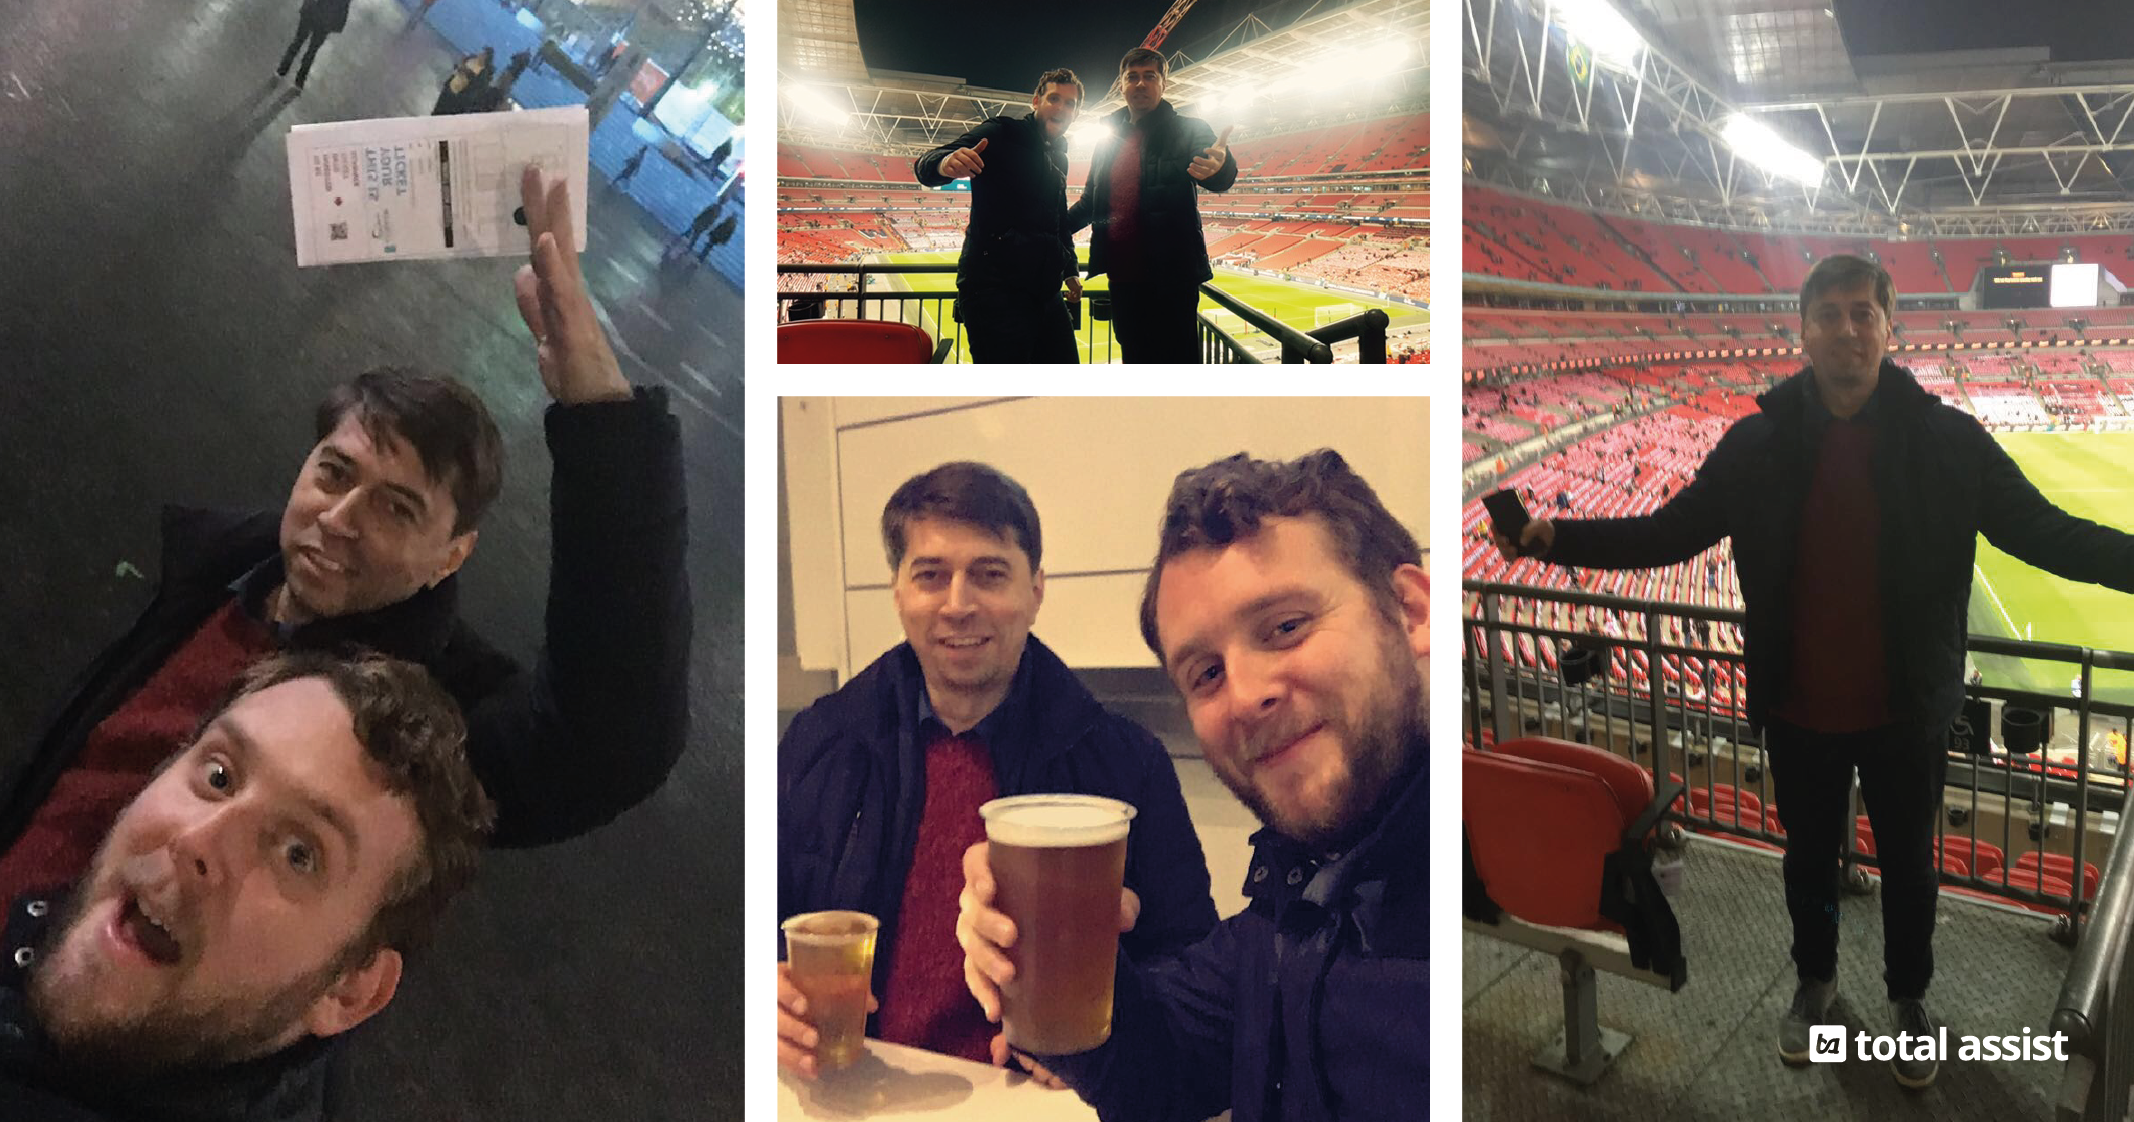 A Night at Wembley – Total Assist Prize Draw Winner